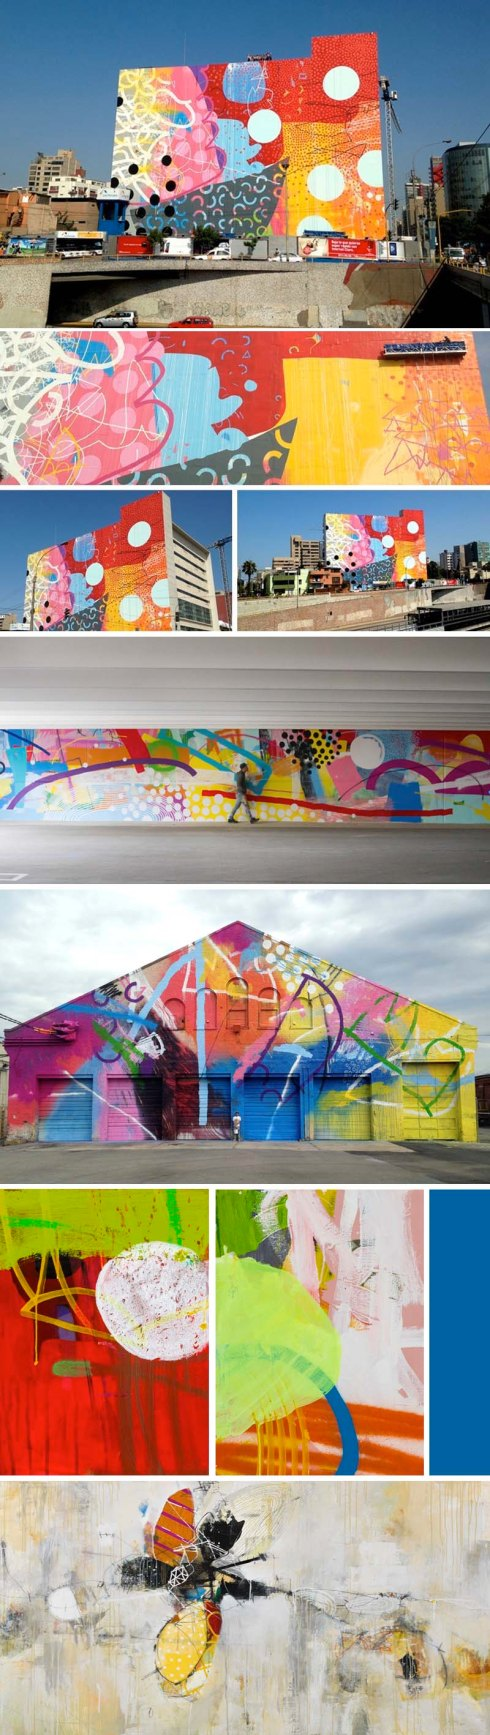 Hense, spectacularly colorful street art, facades, murals, paintings